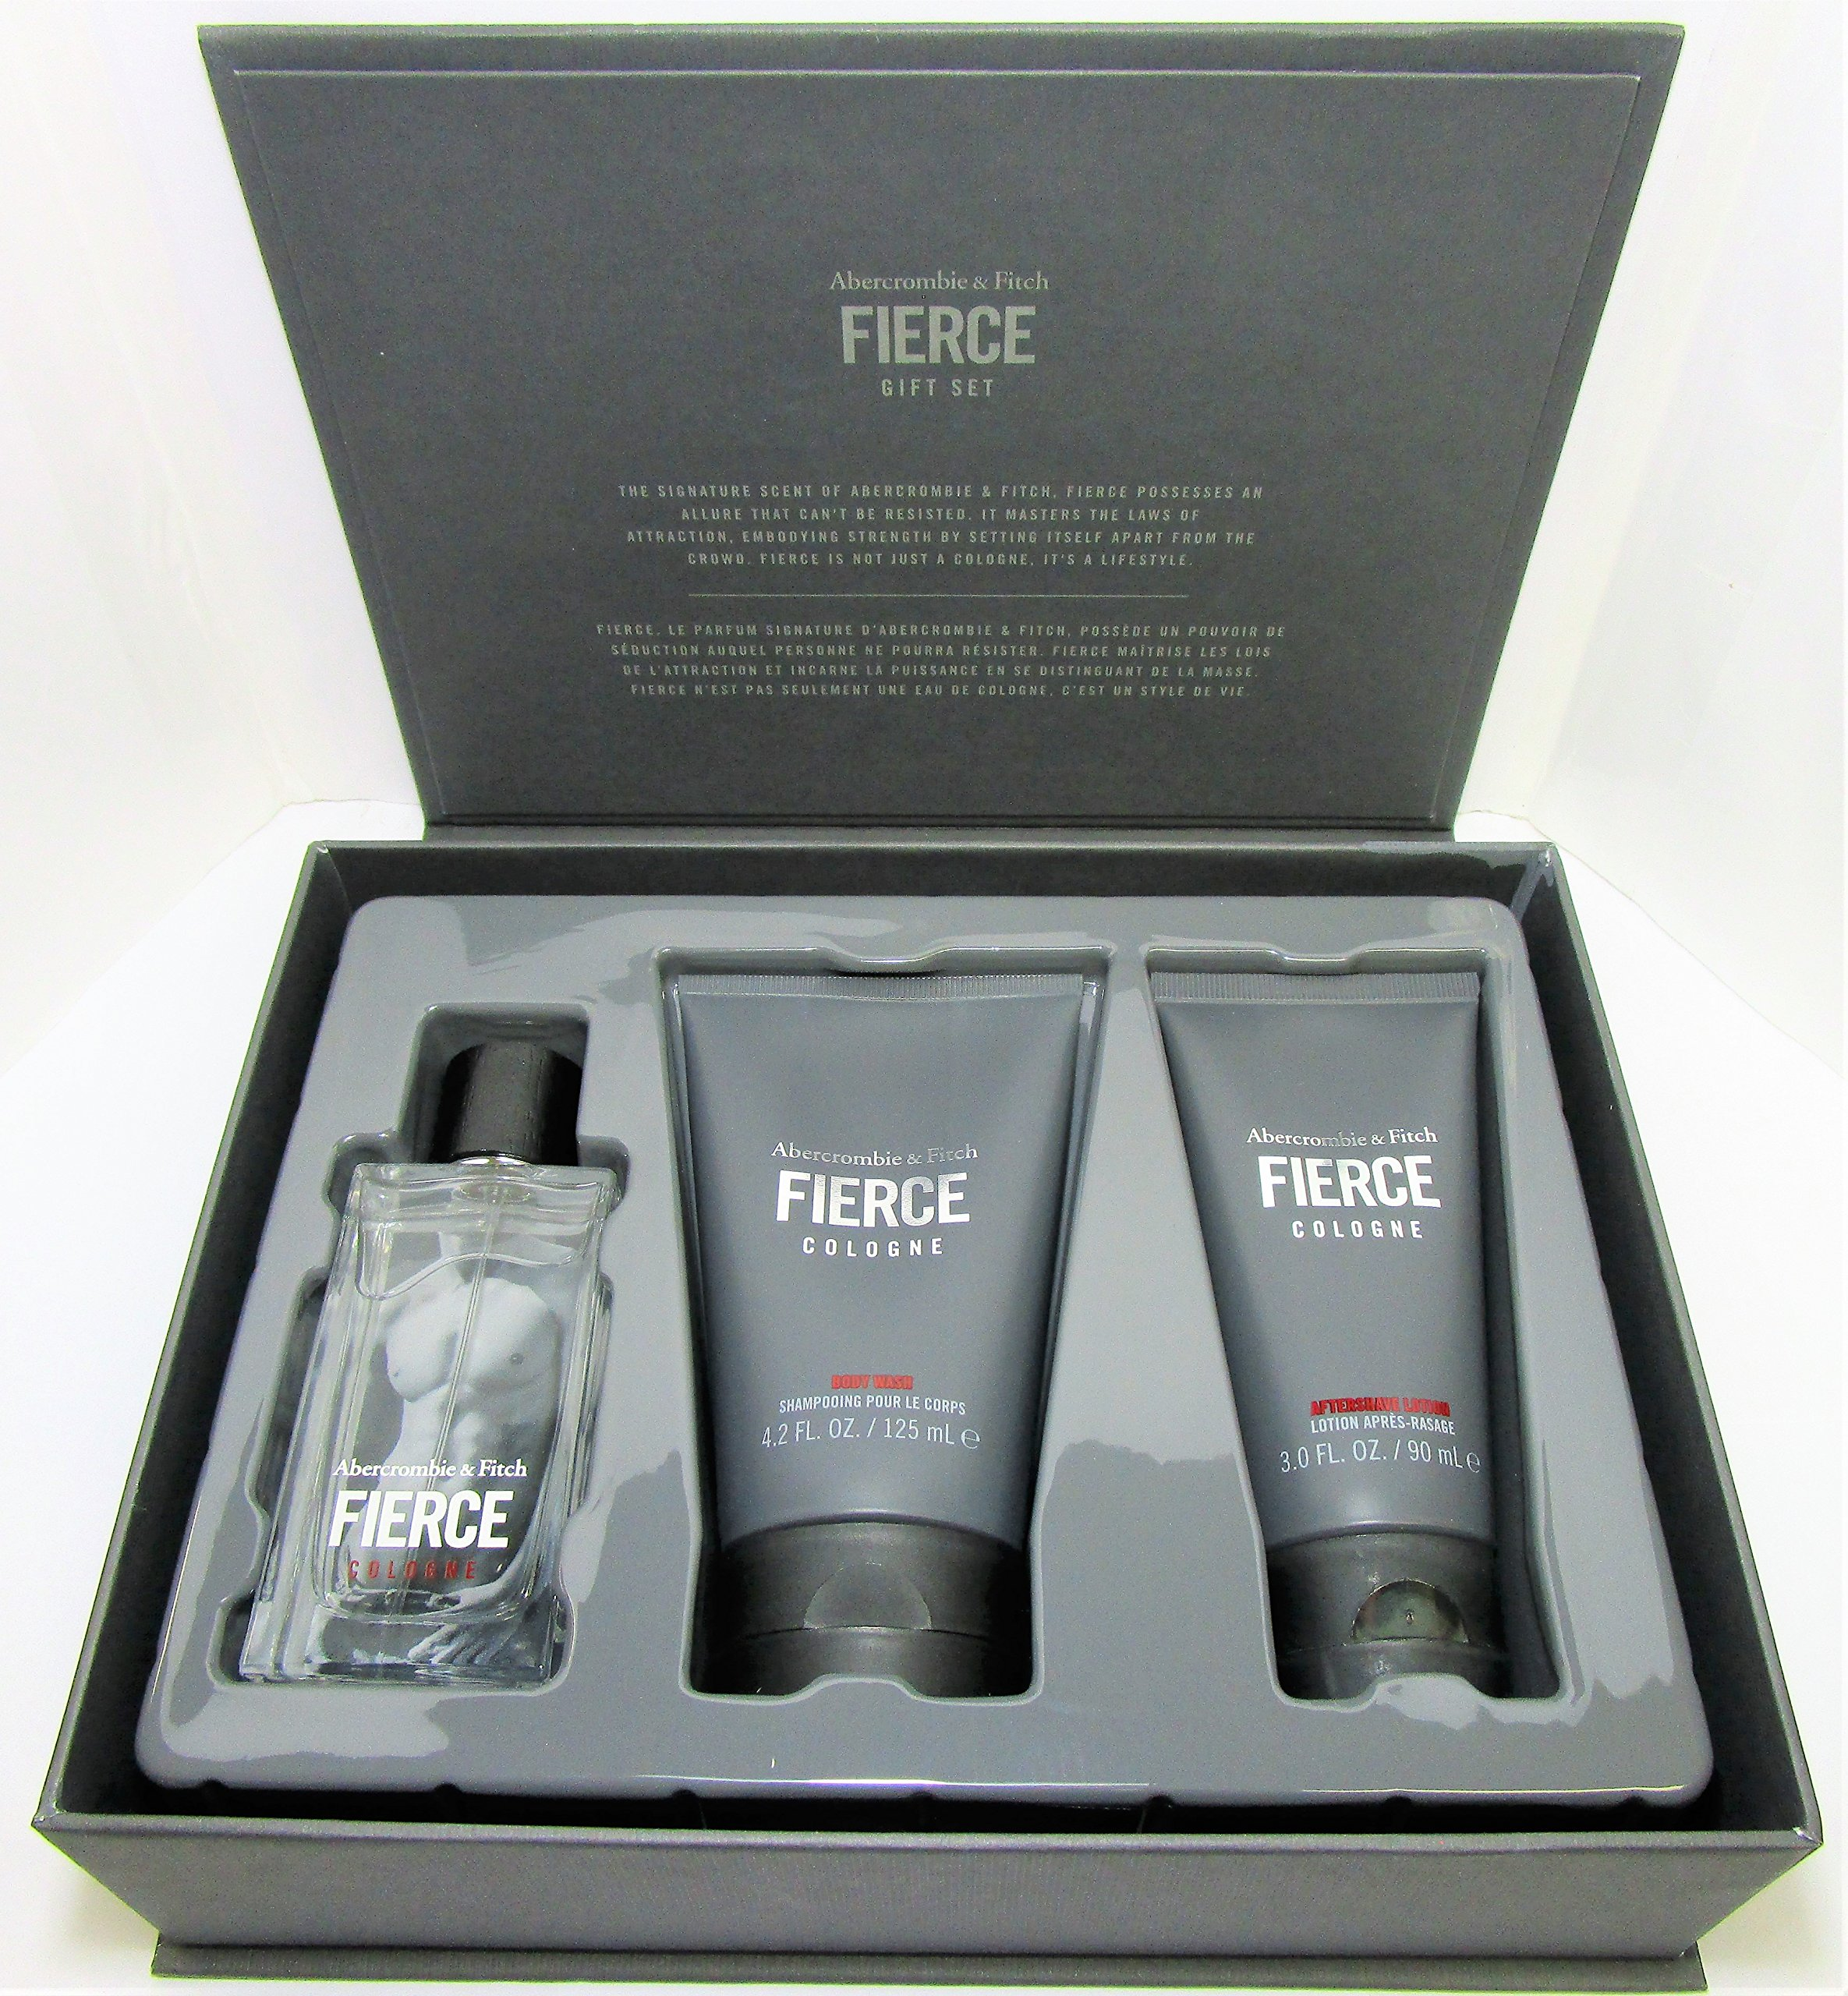 Abercrombie & Fitch Fierce Eau de Cologne 3 Piece Gift Set for Men 1.7 oz Cologne, 4.2 oz Body Wash, 3.0 oz Aftershave Lotion